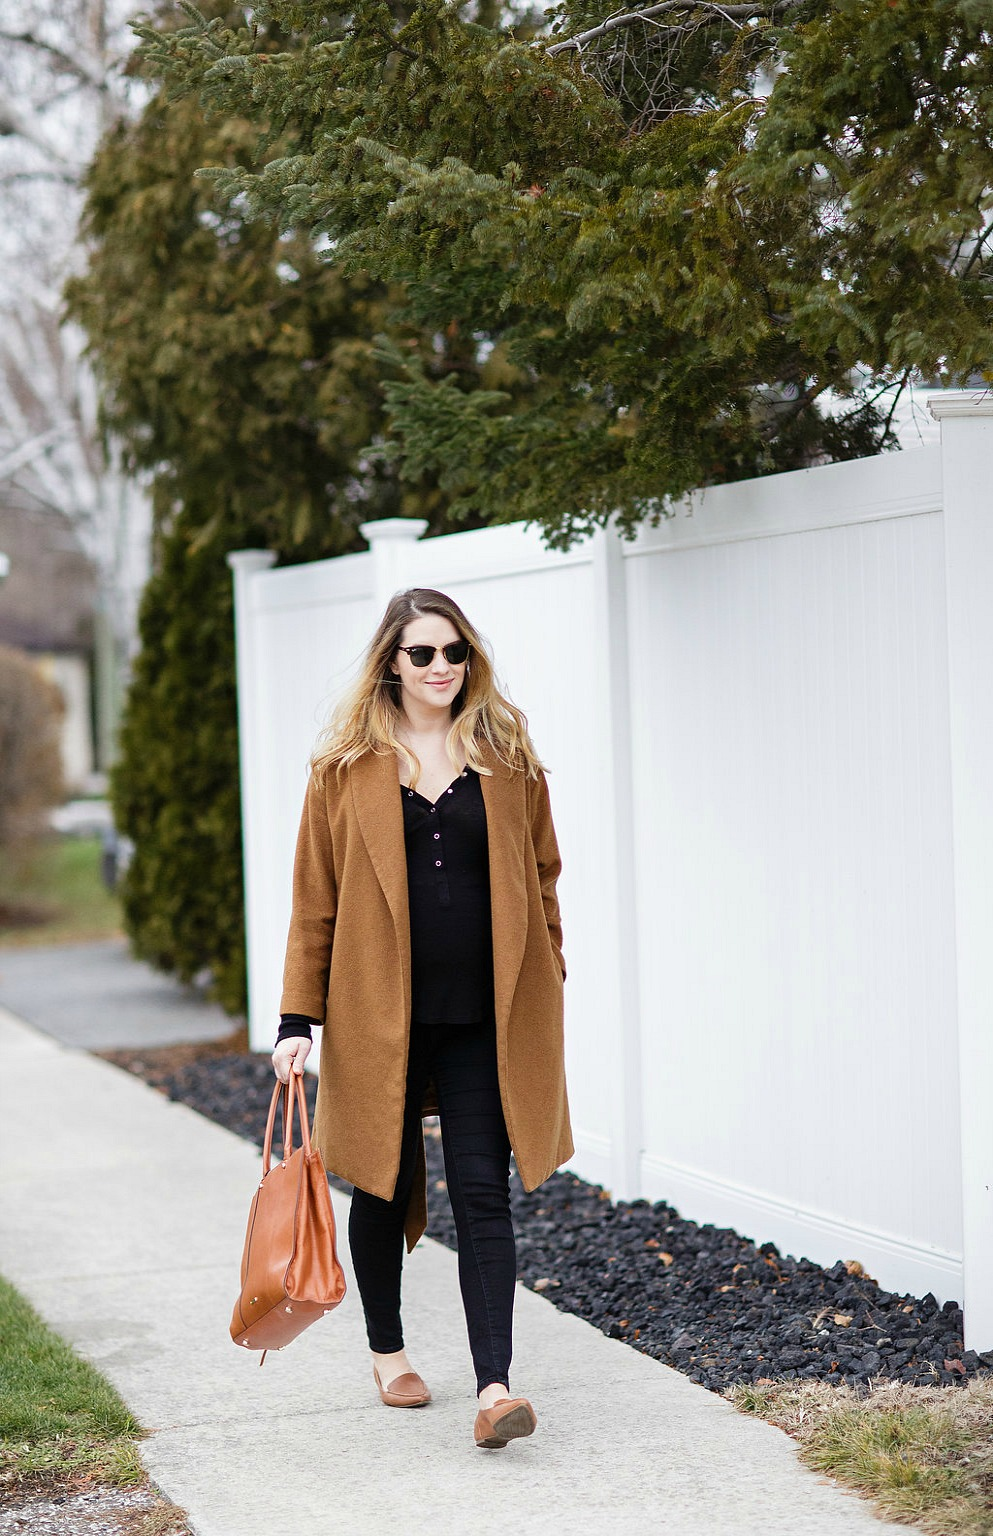 maternity-winter-style-camel-coat-camel-loafers-rebecca-minkoff-tote-ray-ban-clubmaster-black-pants-rosecitystyleguide-fashion-blog-canadian-18